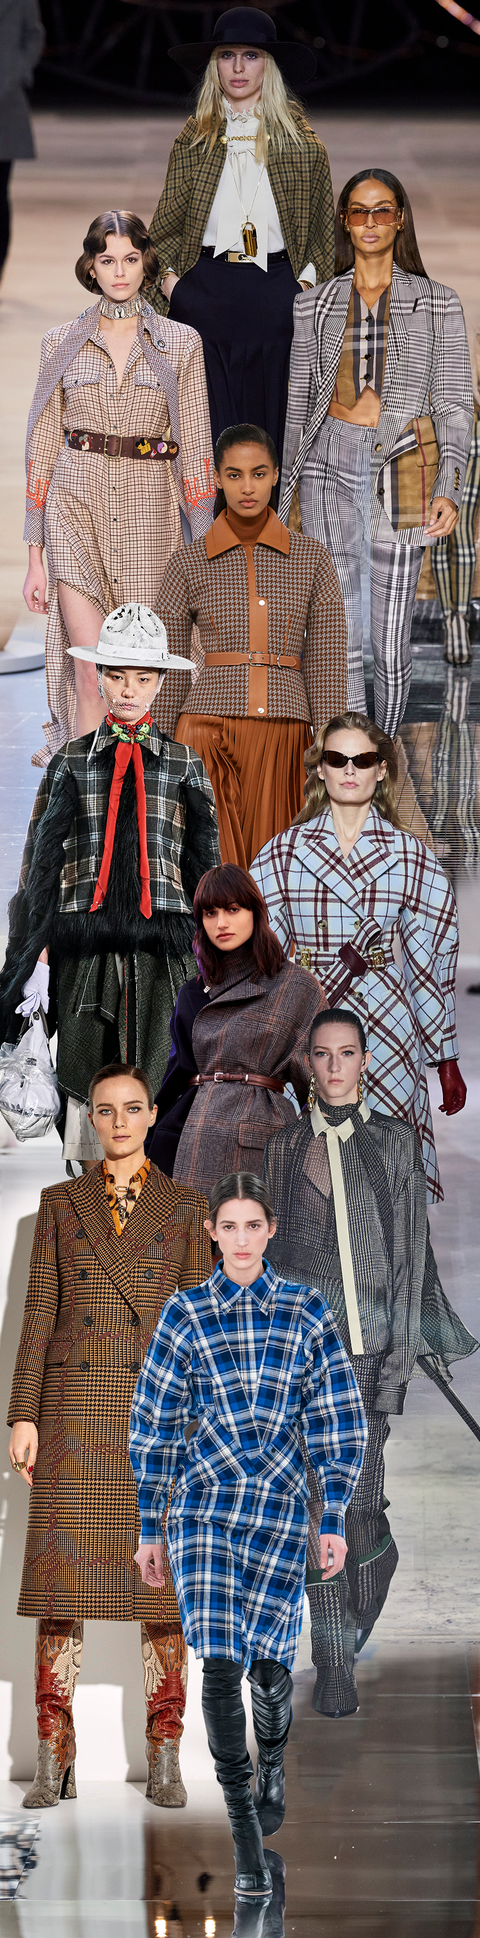 Fashion, People, Tartan, Plaid, Pattern, Design, Outerwear, Fashion design, Haute couture, Vintage clothing,